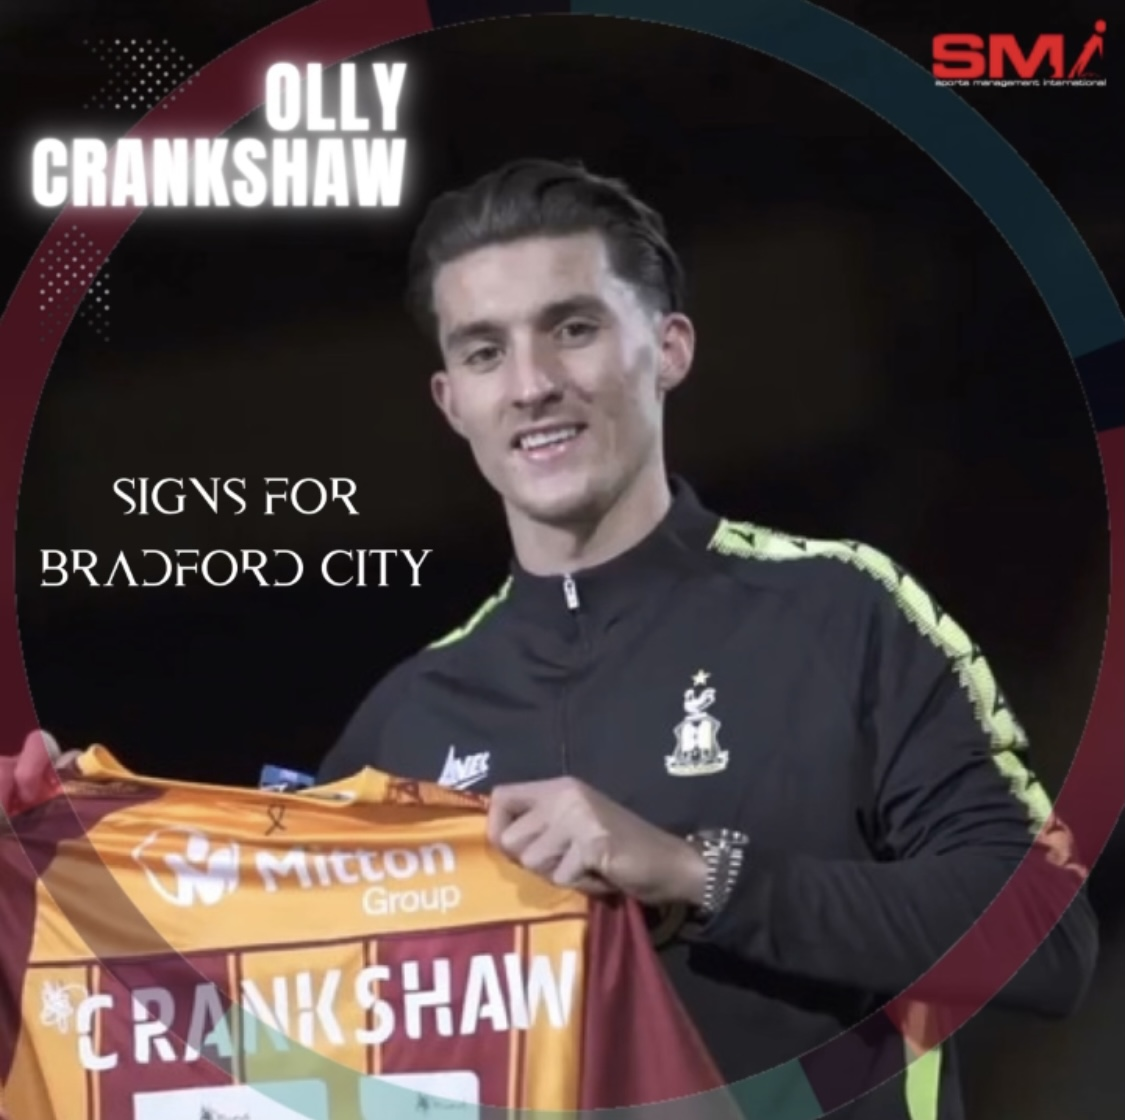 Olly Crankshaw signs for Bradford City